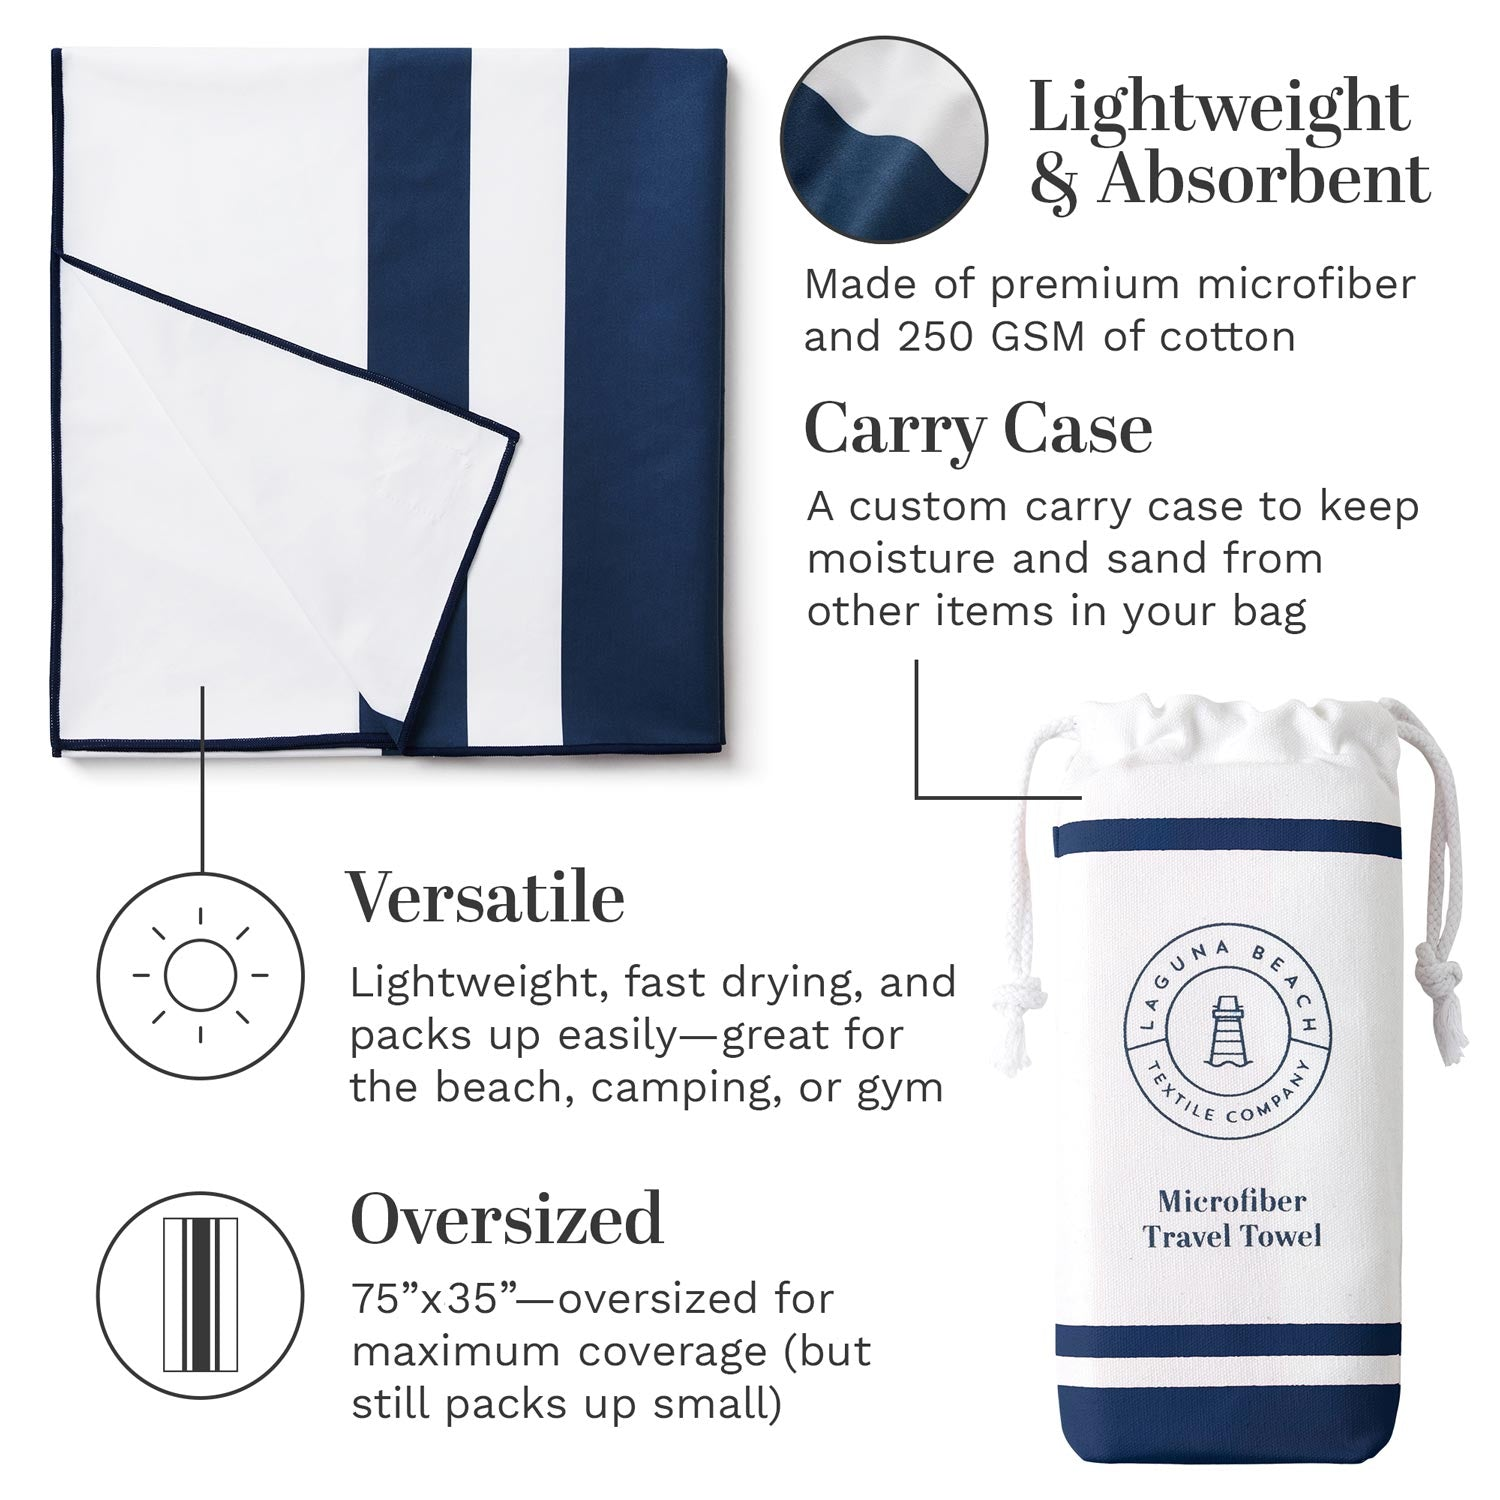 Infographic for navy blue microfiber beach towel highlighting how it is oversized, lightweight, and absorbent.